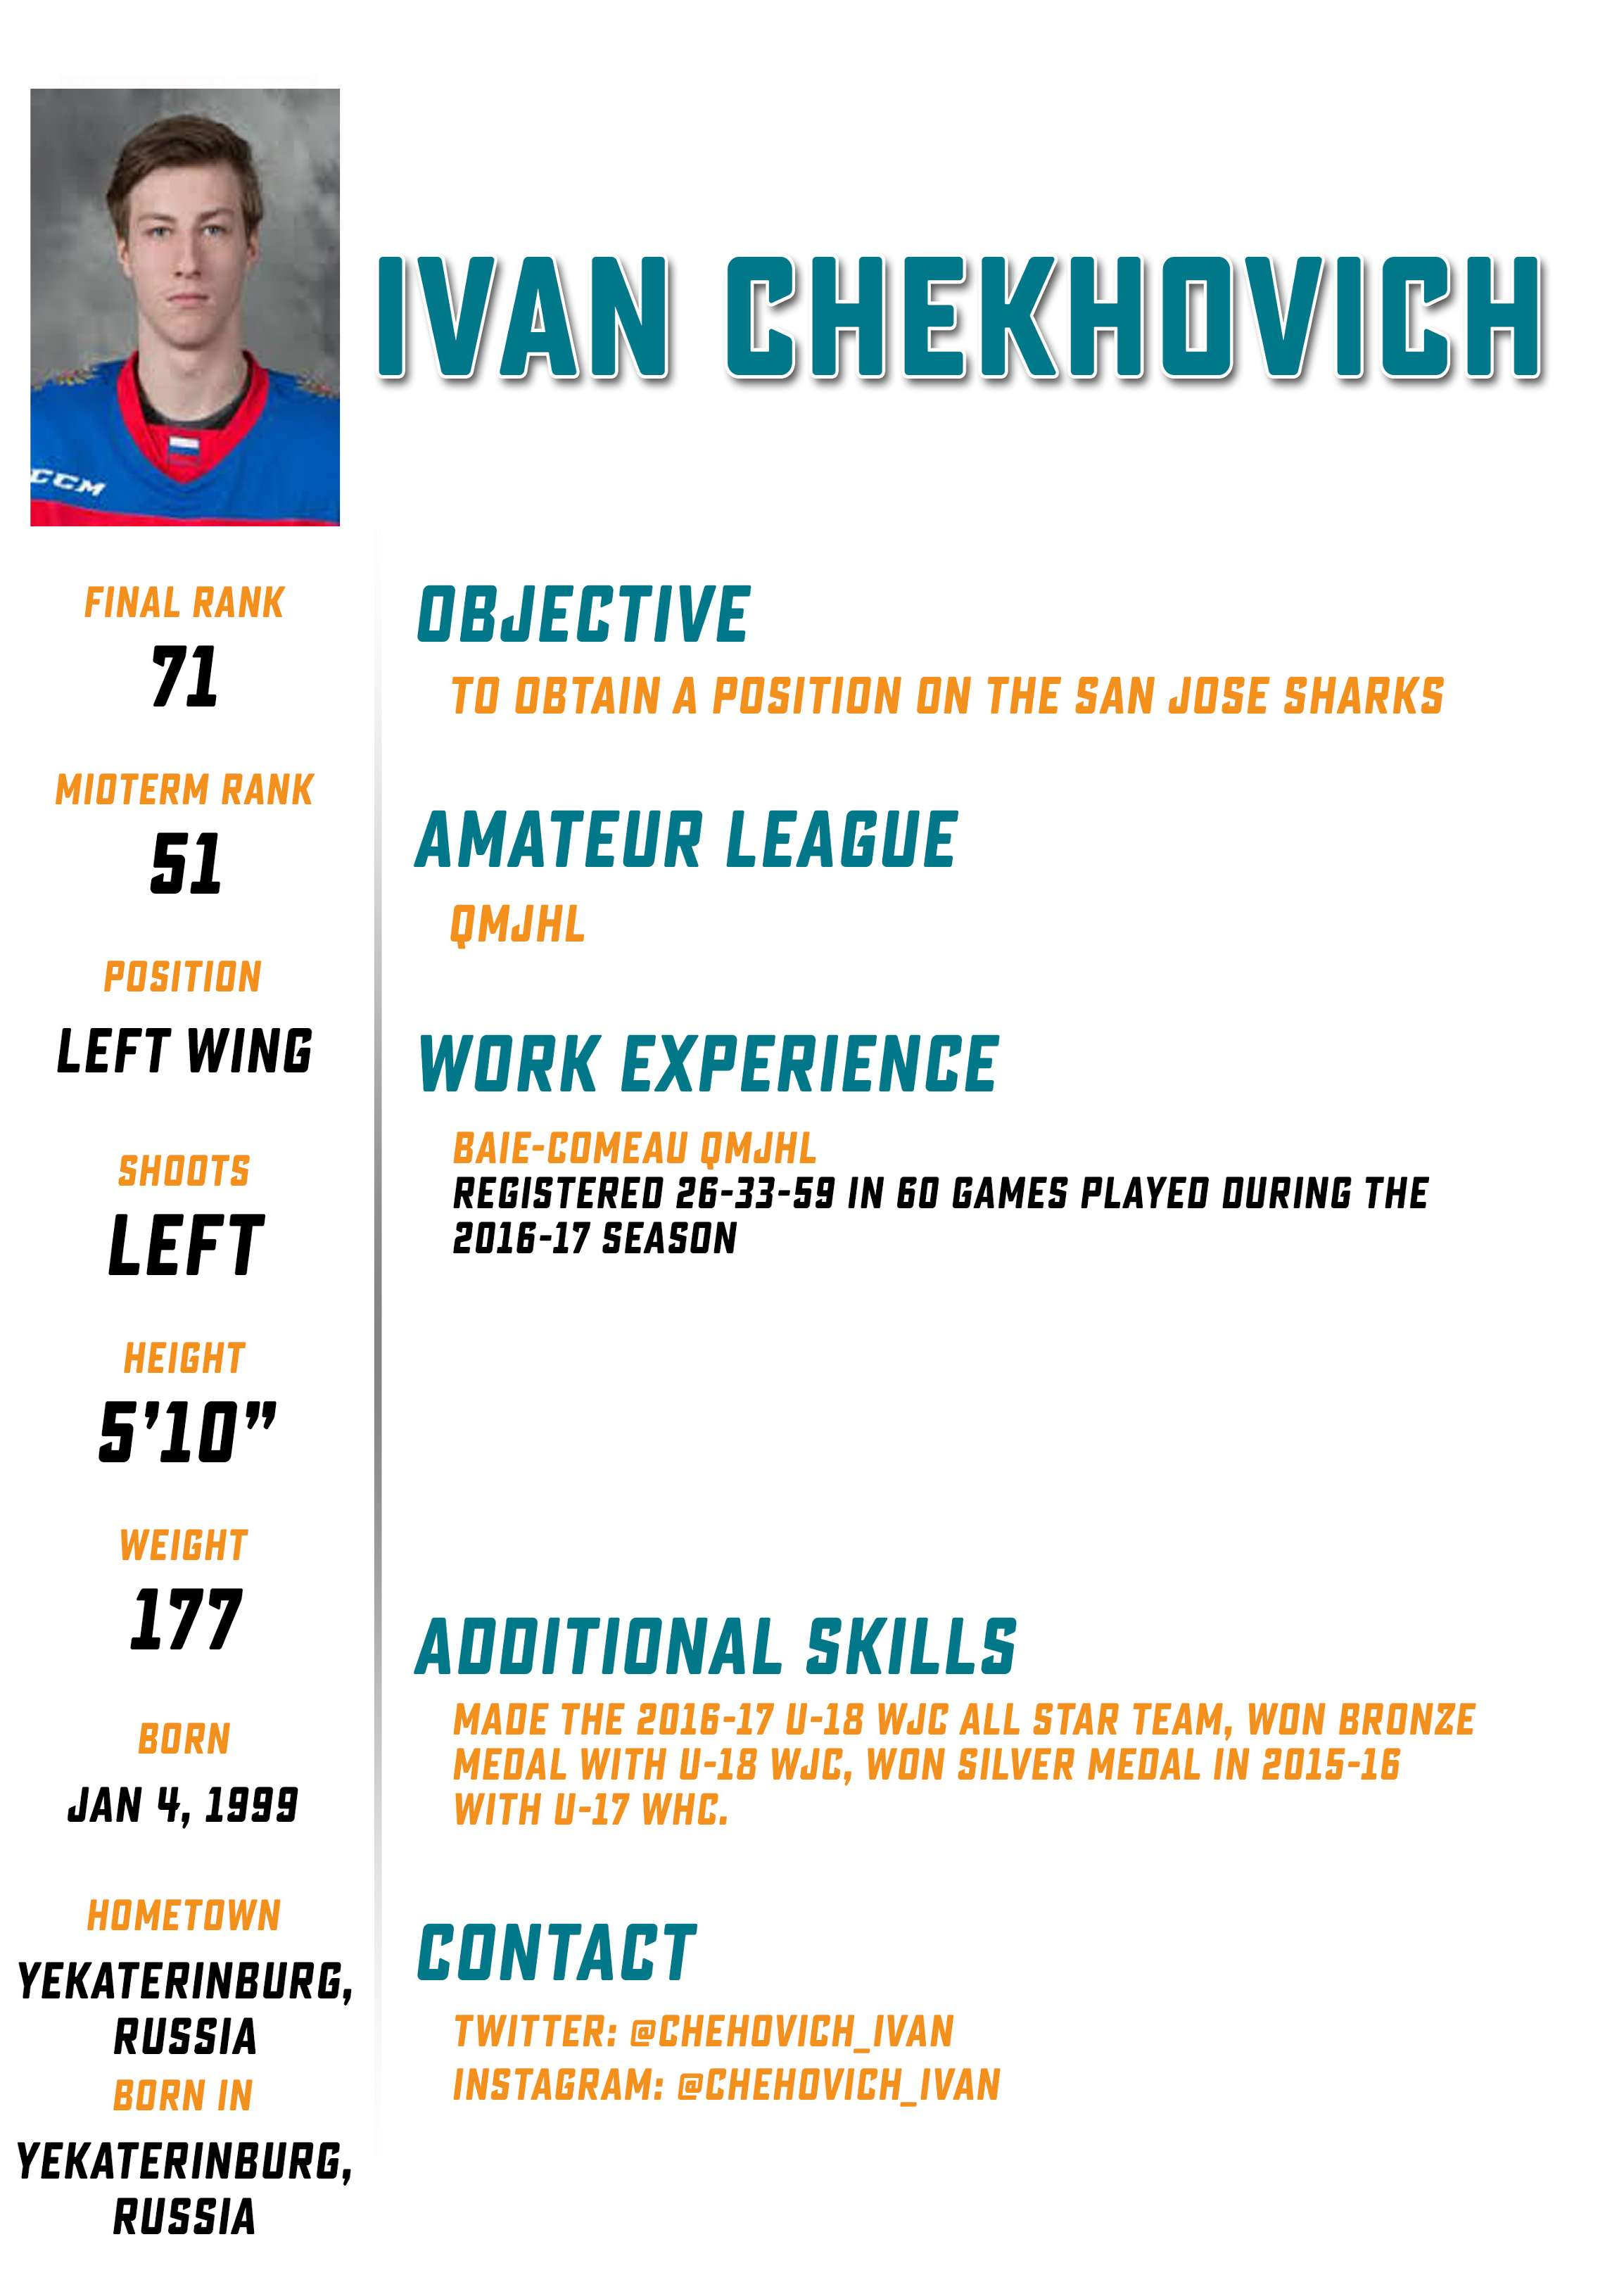 Hockey Resume Website Draft Class Resume Ivan Chekhovich Nhl